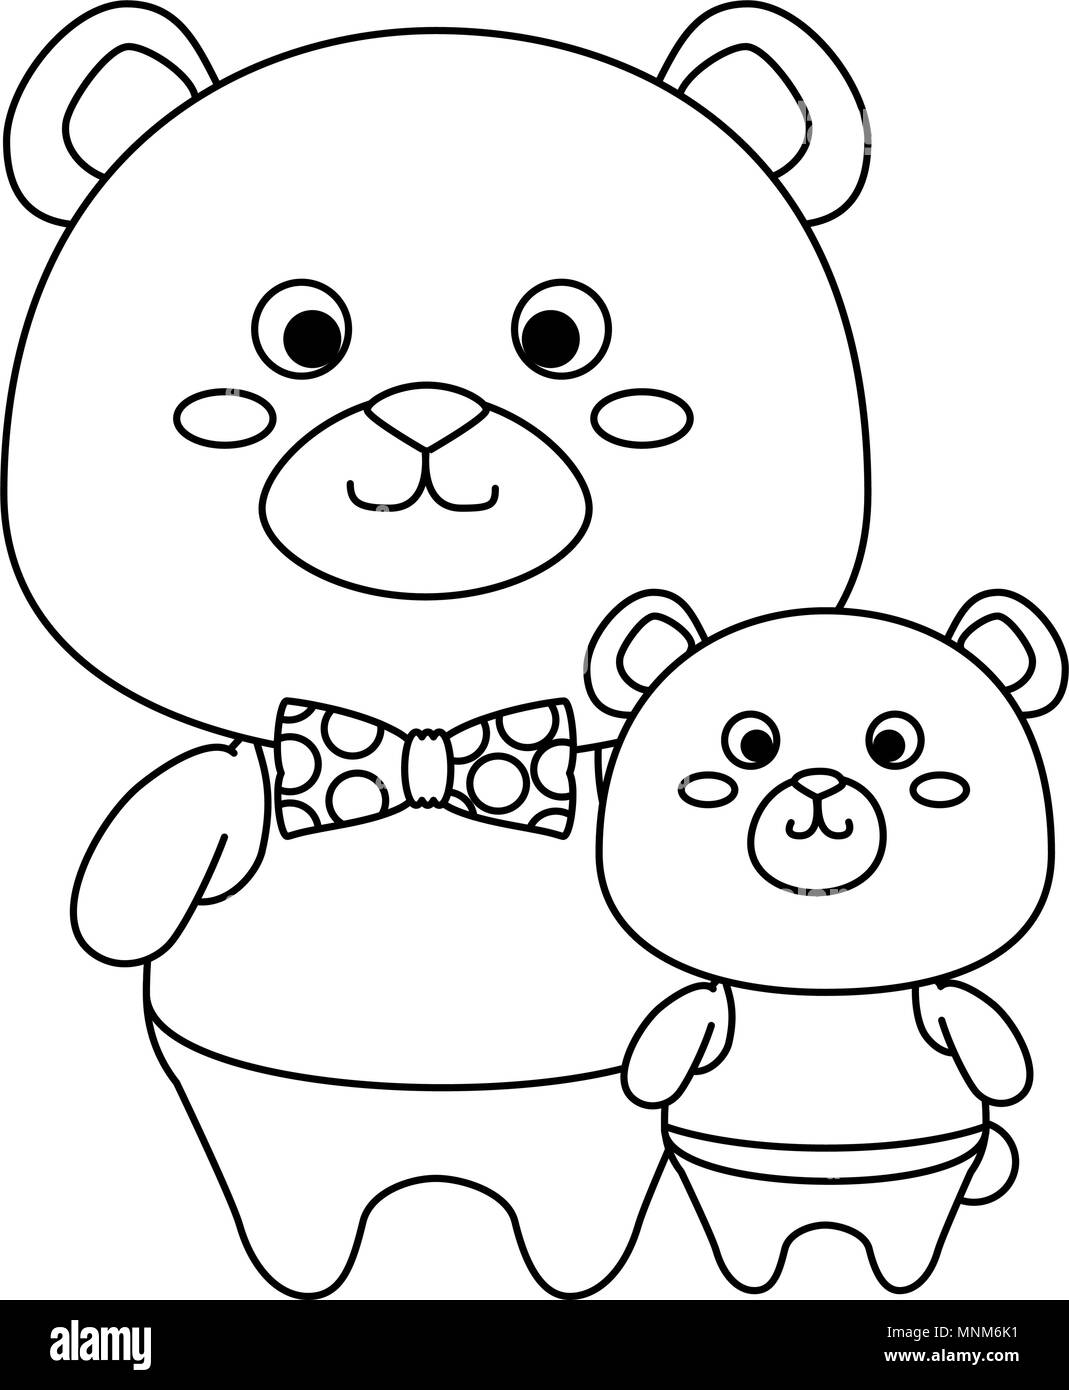 cute father and son bears teddy adorables characters - Stock Image